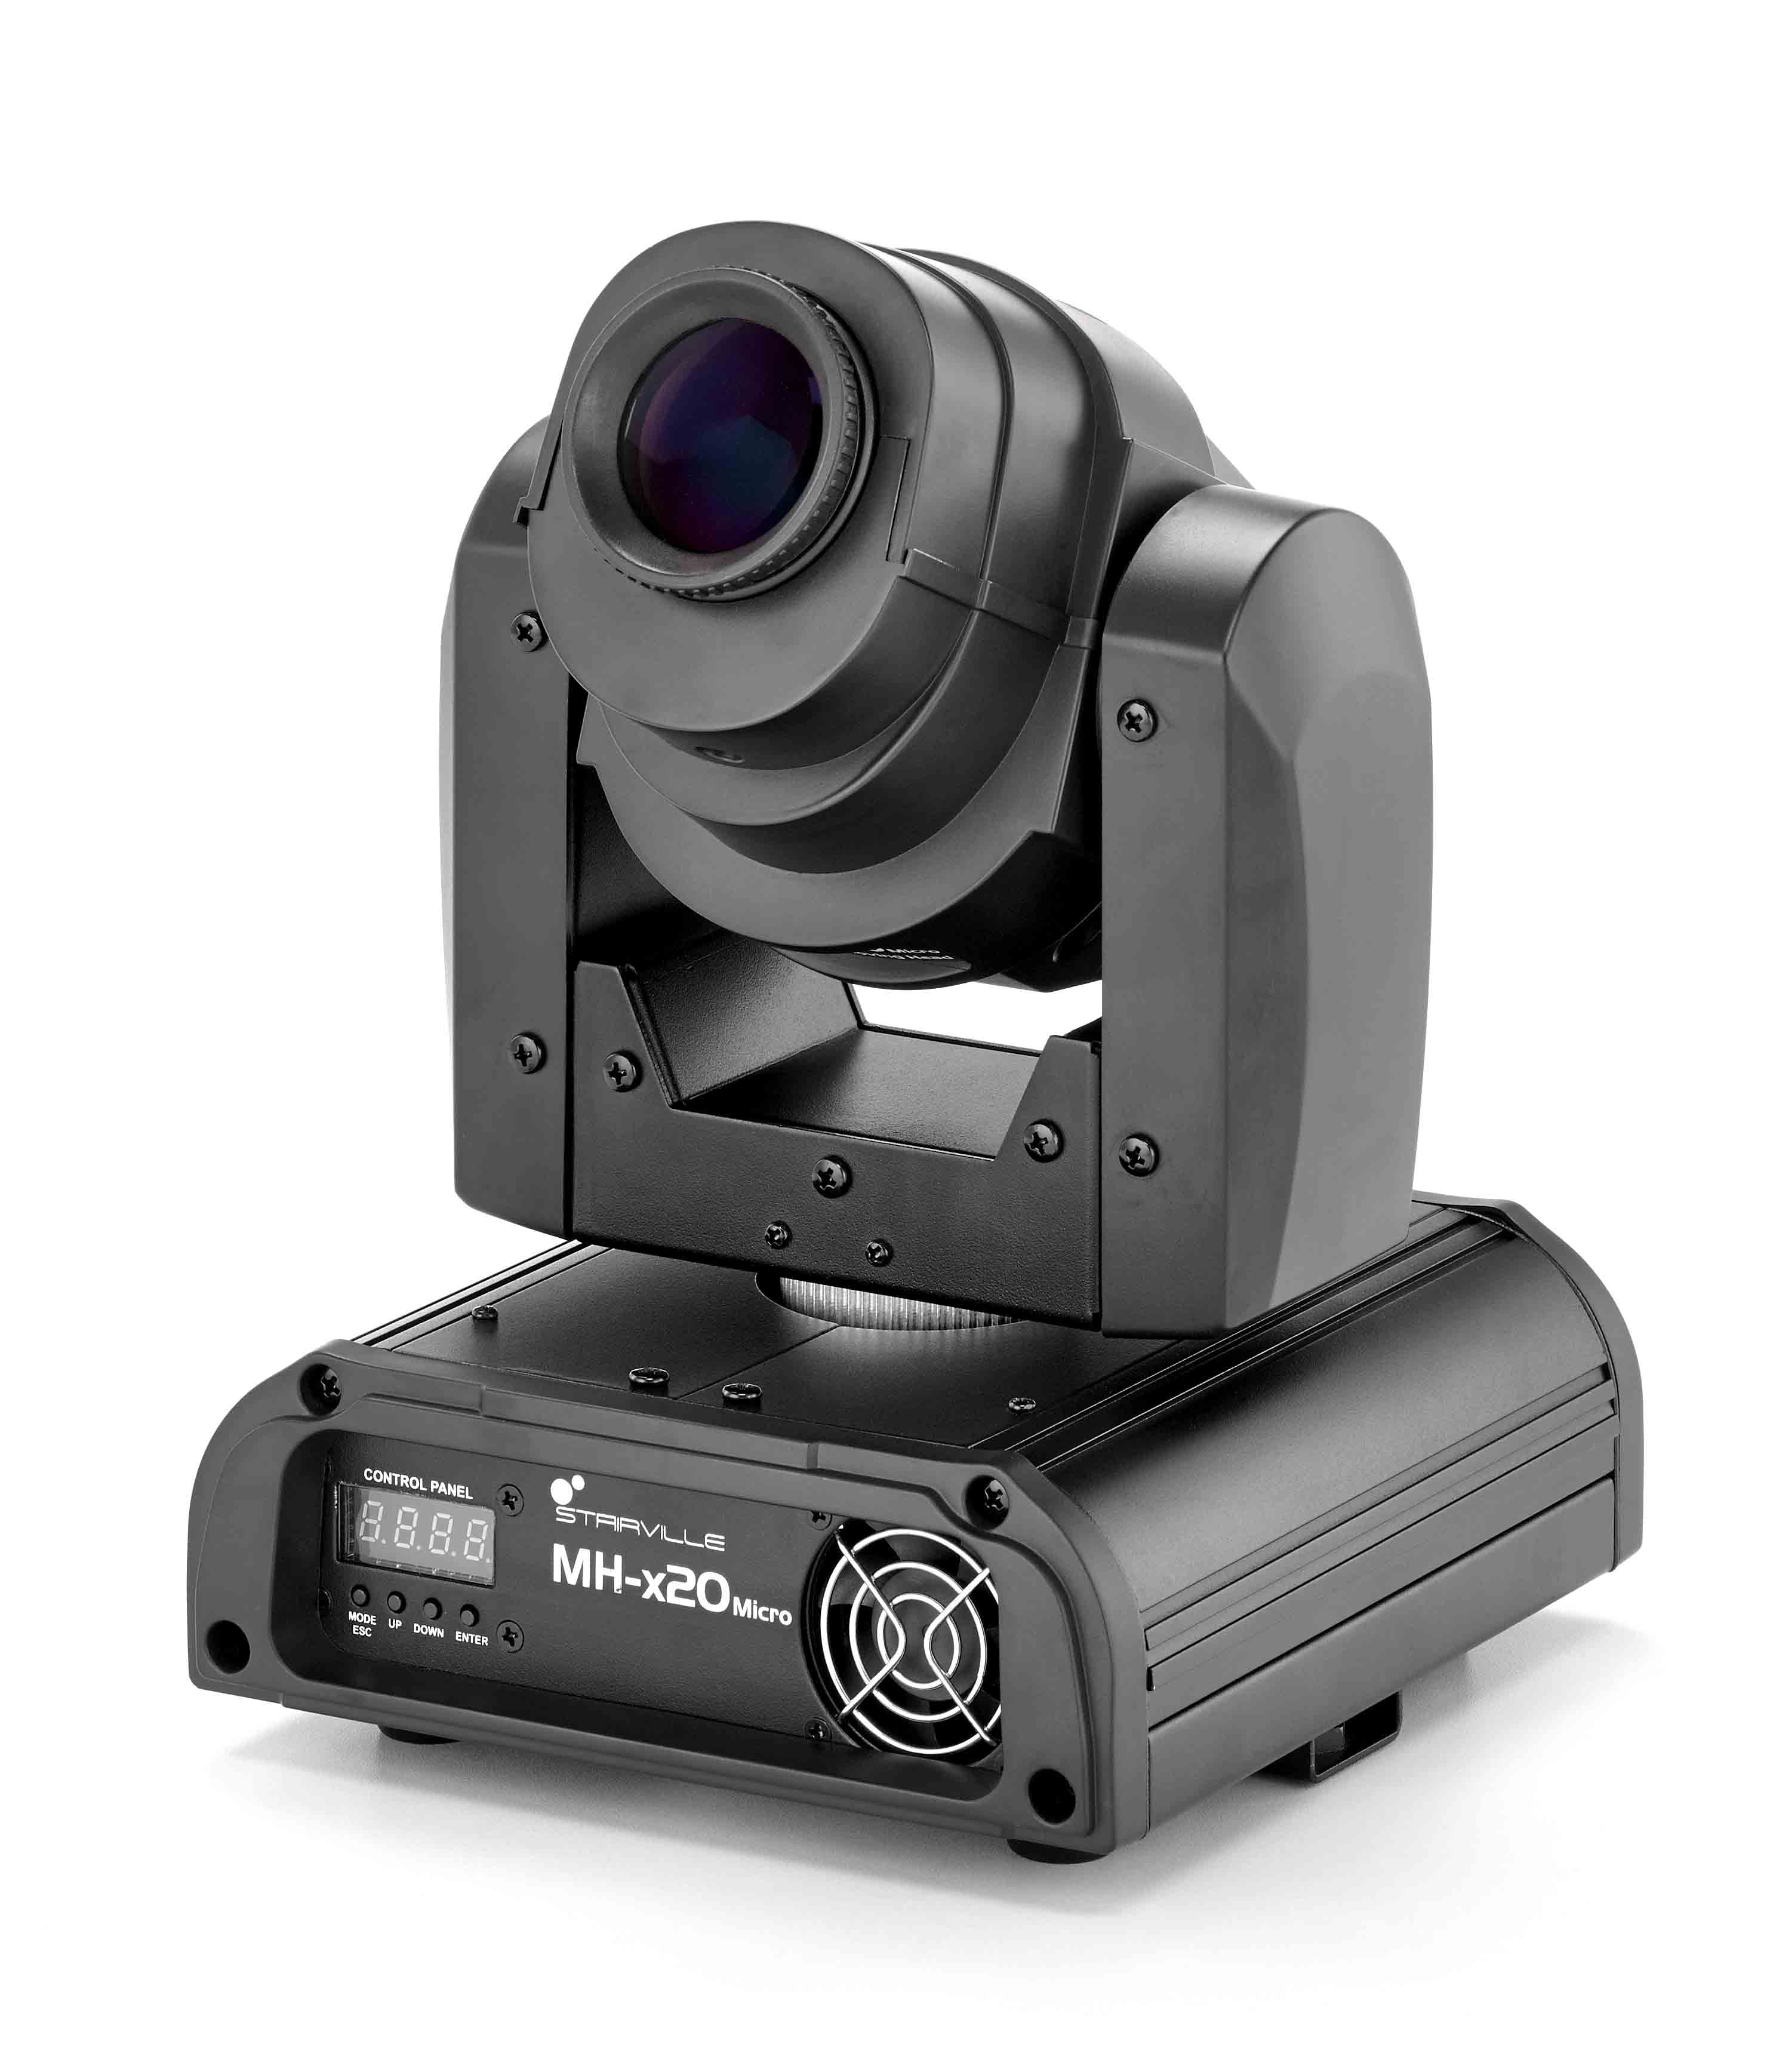 Stairville MH-x20 Micro LED Spot moving head